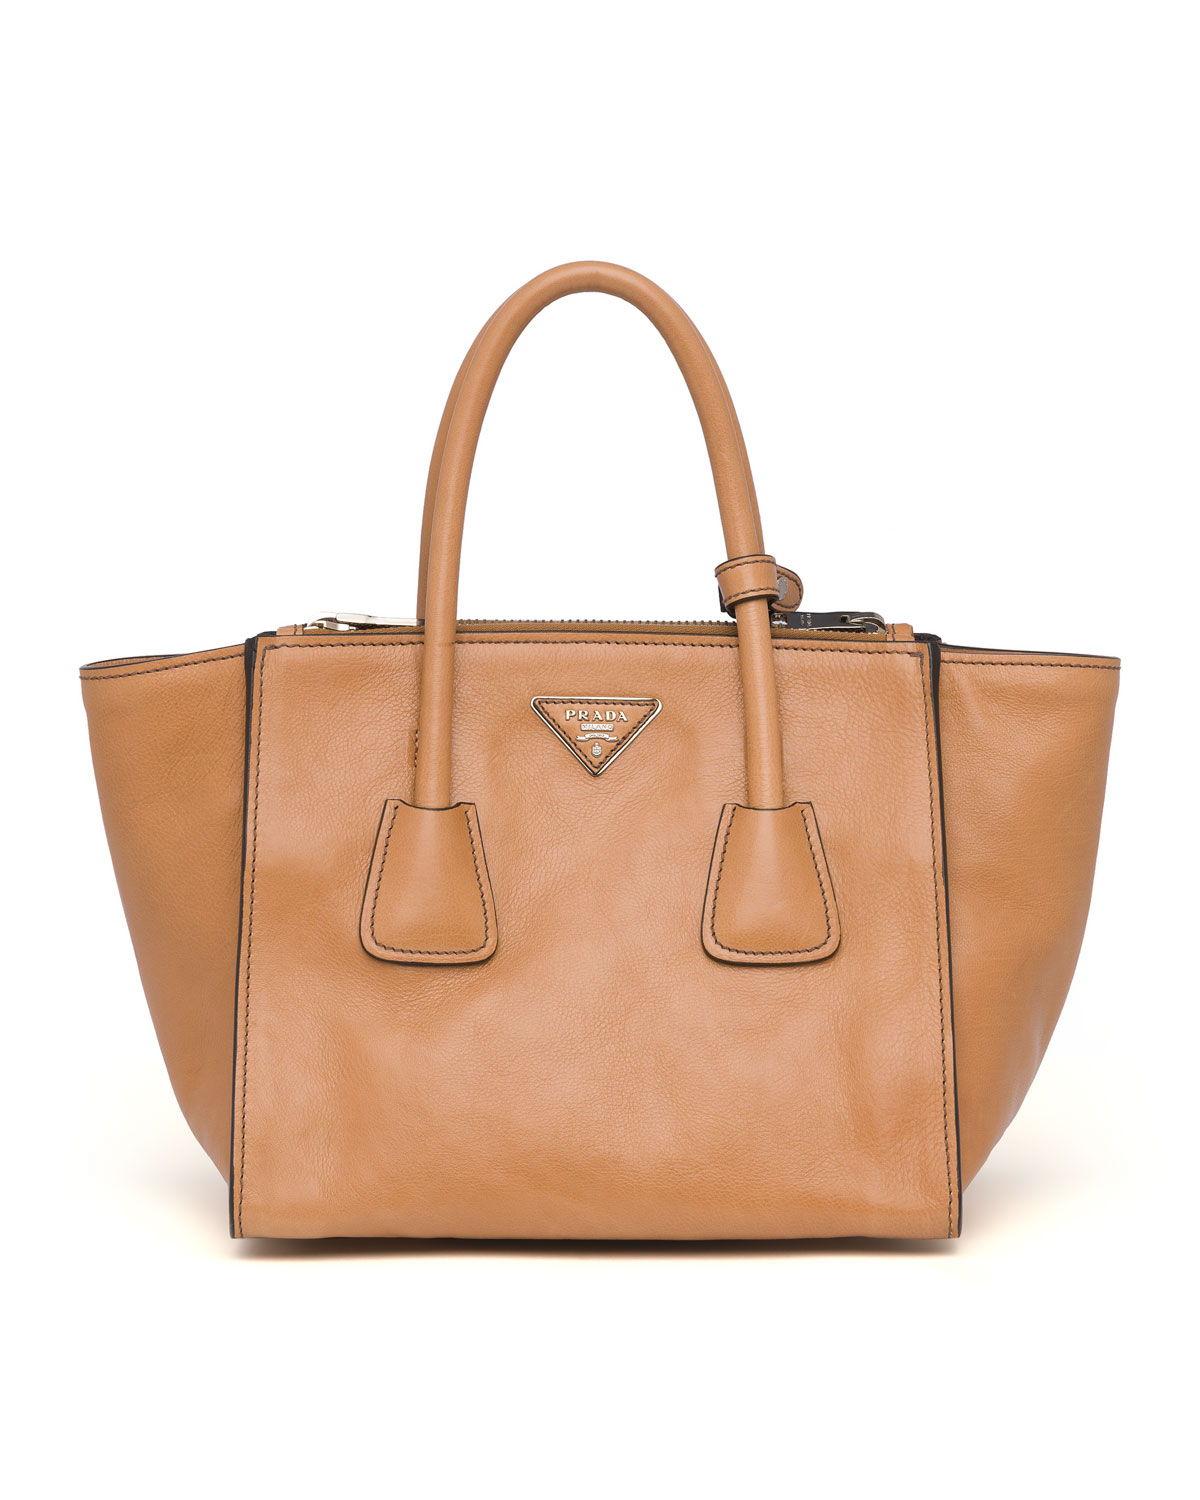 84ff345abde2 Prada Glace Calf Twin Pocket Tote Bag, Natural (Naturale) | Neiman ...